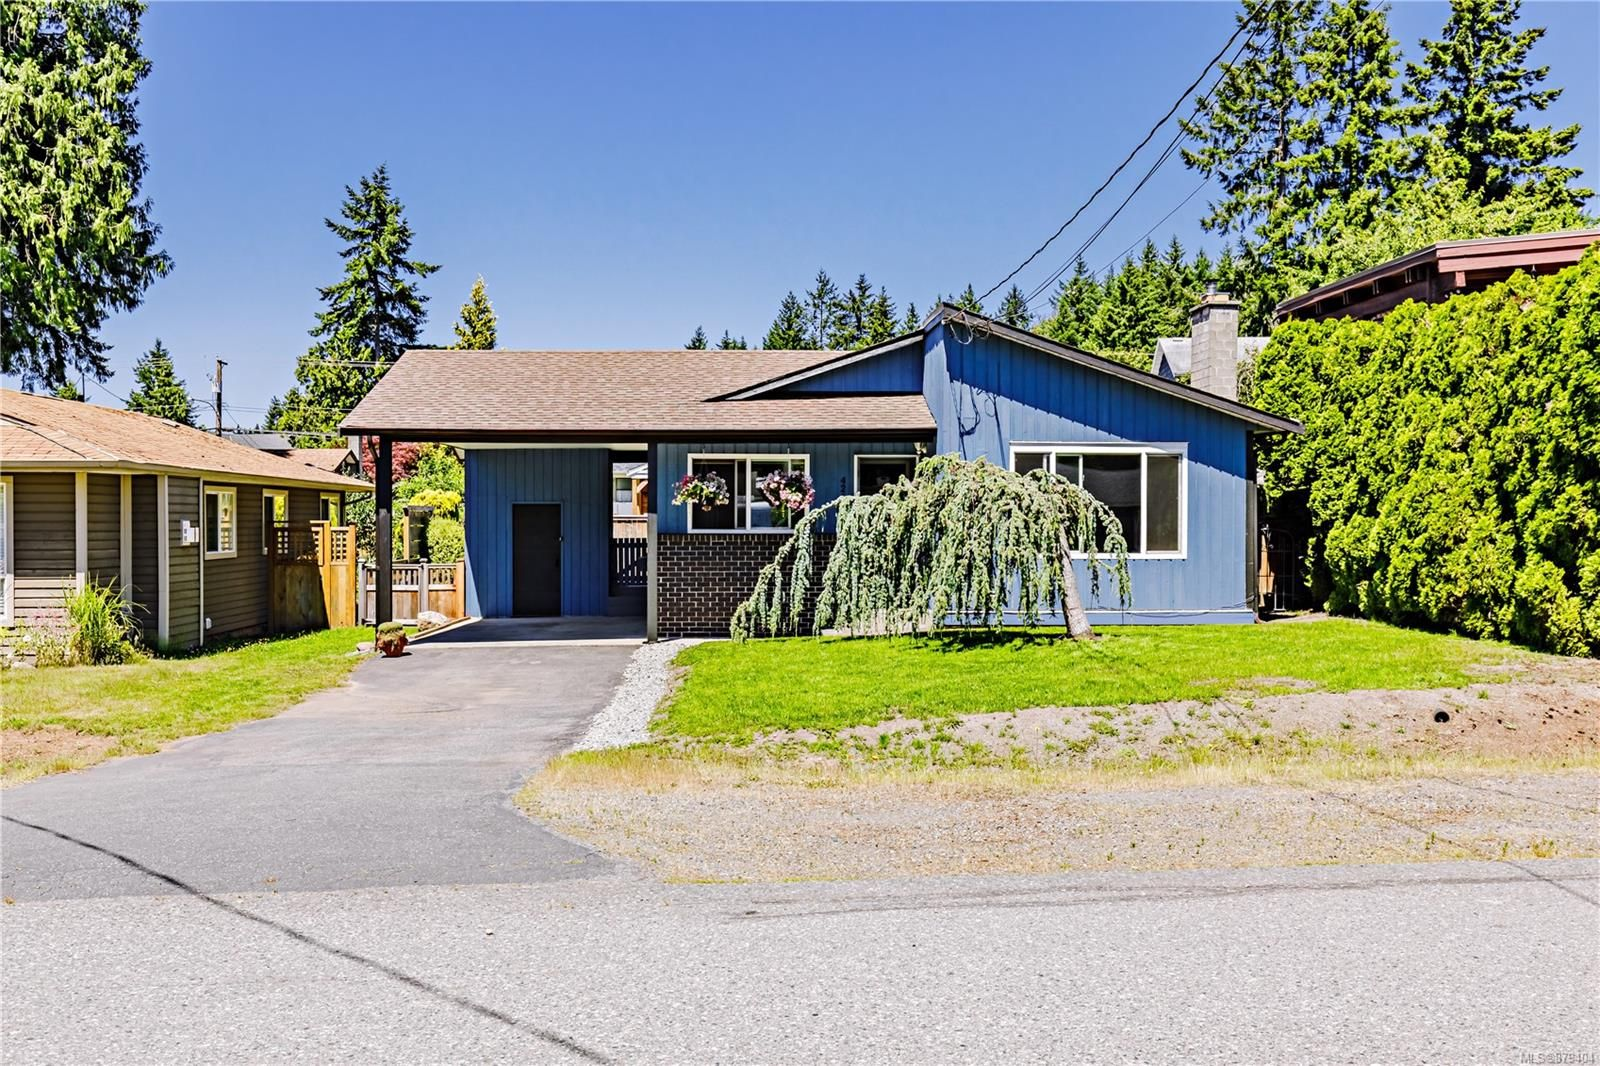 Main Photo: 4260 Clubhouse Dr in : Na Uplands House for sale (Nanaimo)  : MLS®# 879404